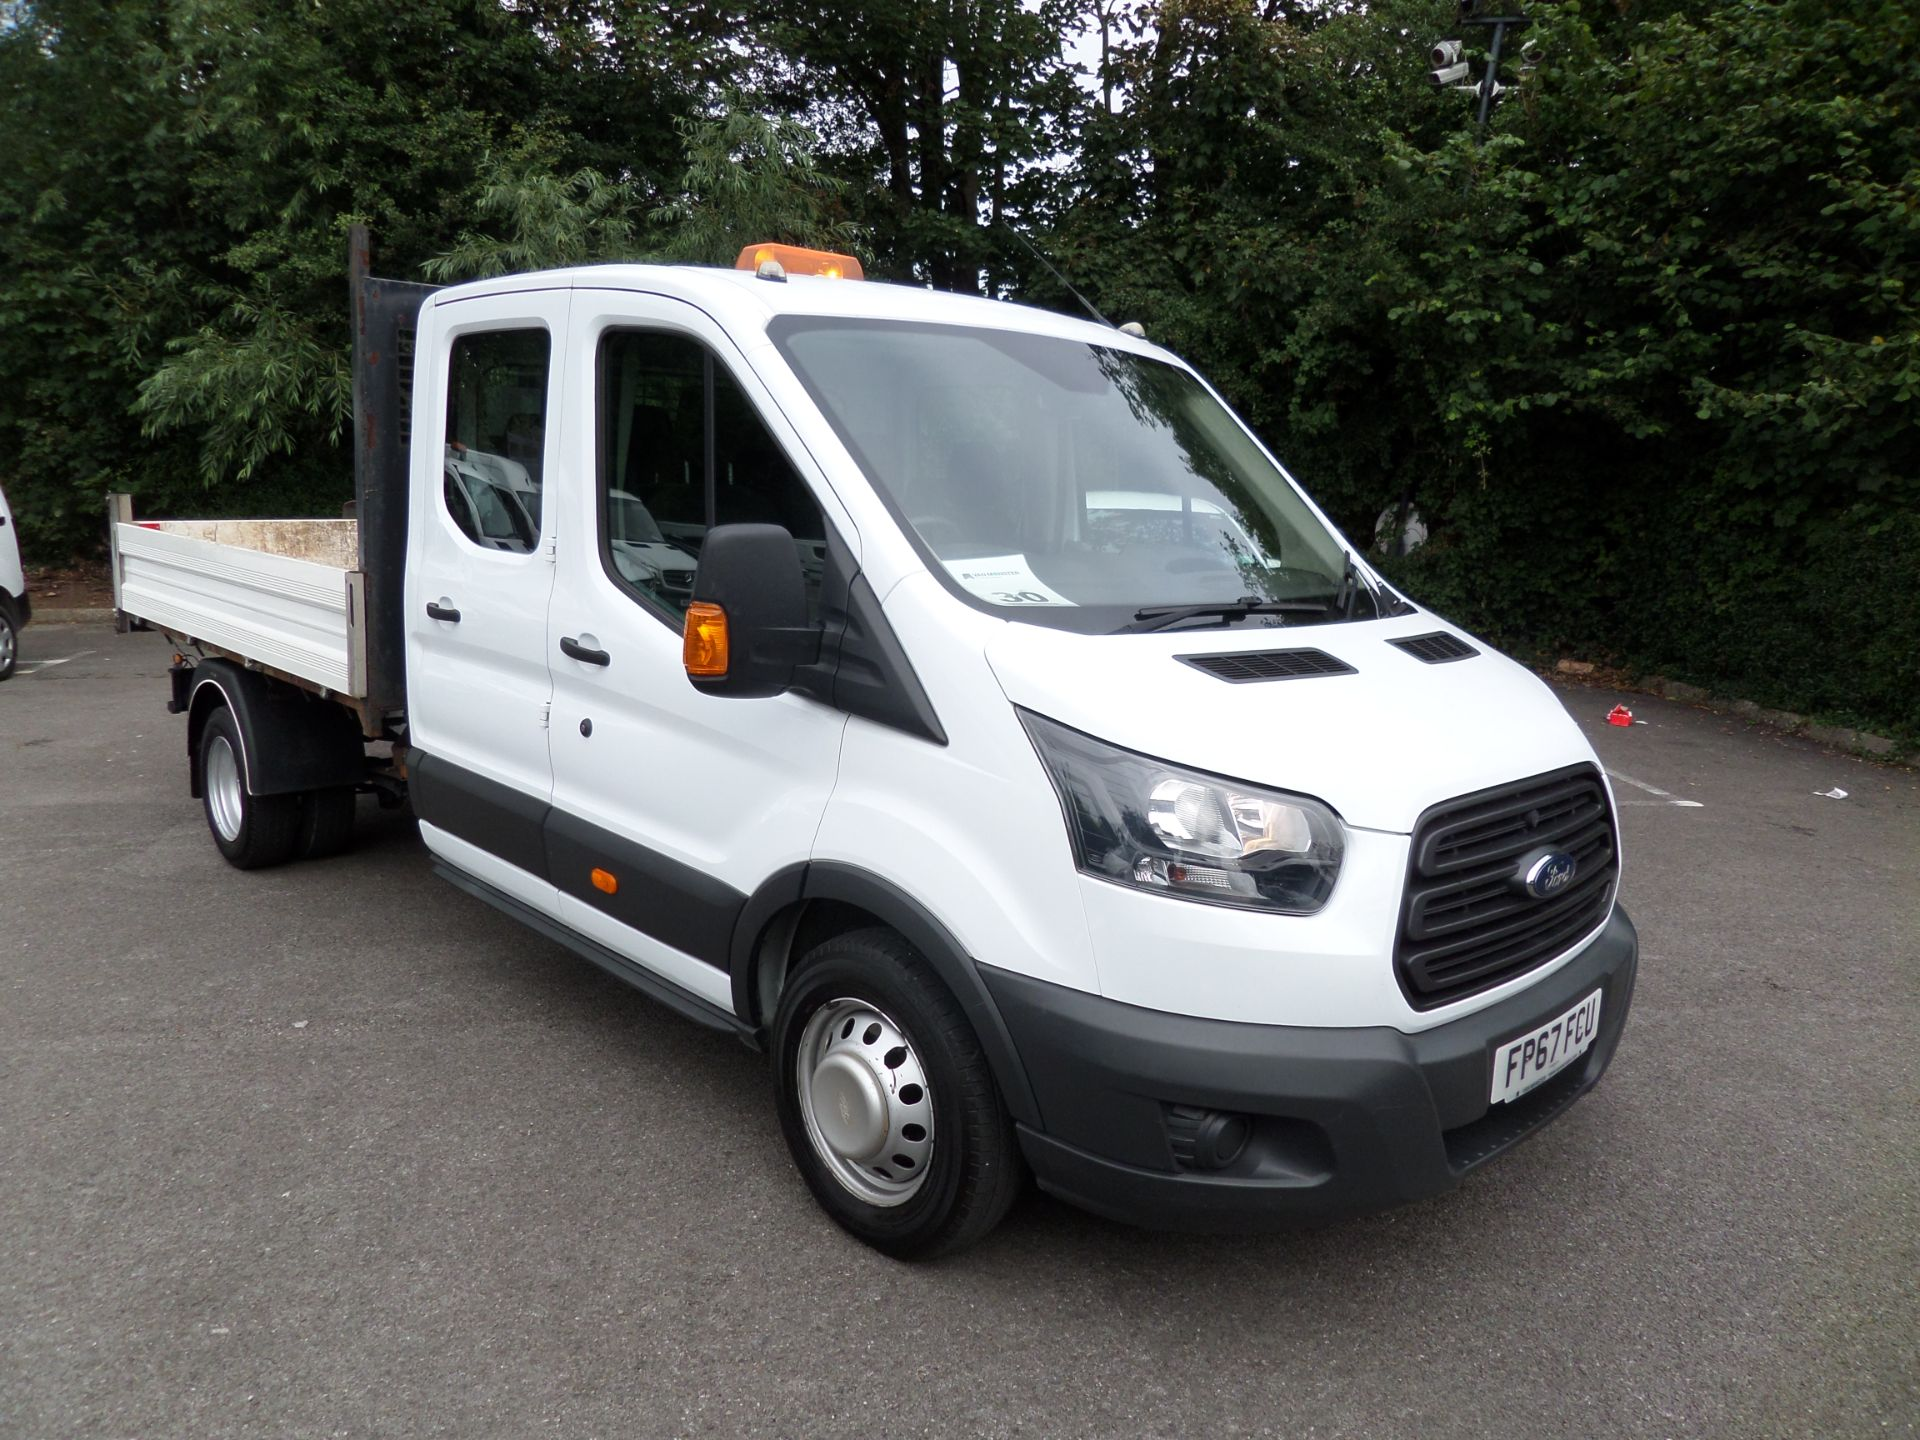 2018 Ford Transit 2.0 Tdci 130Ps Double Cab Tipper Euro 6 (FP67FCU) Image 1